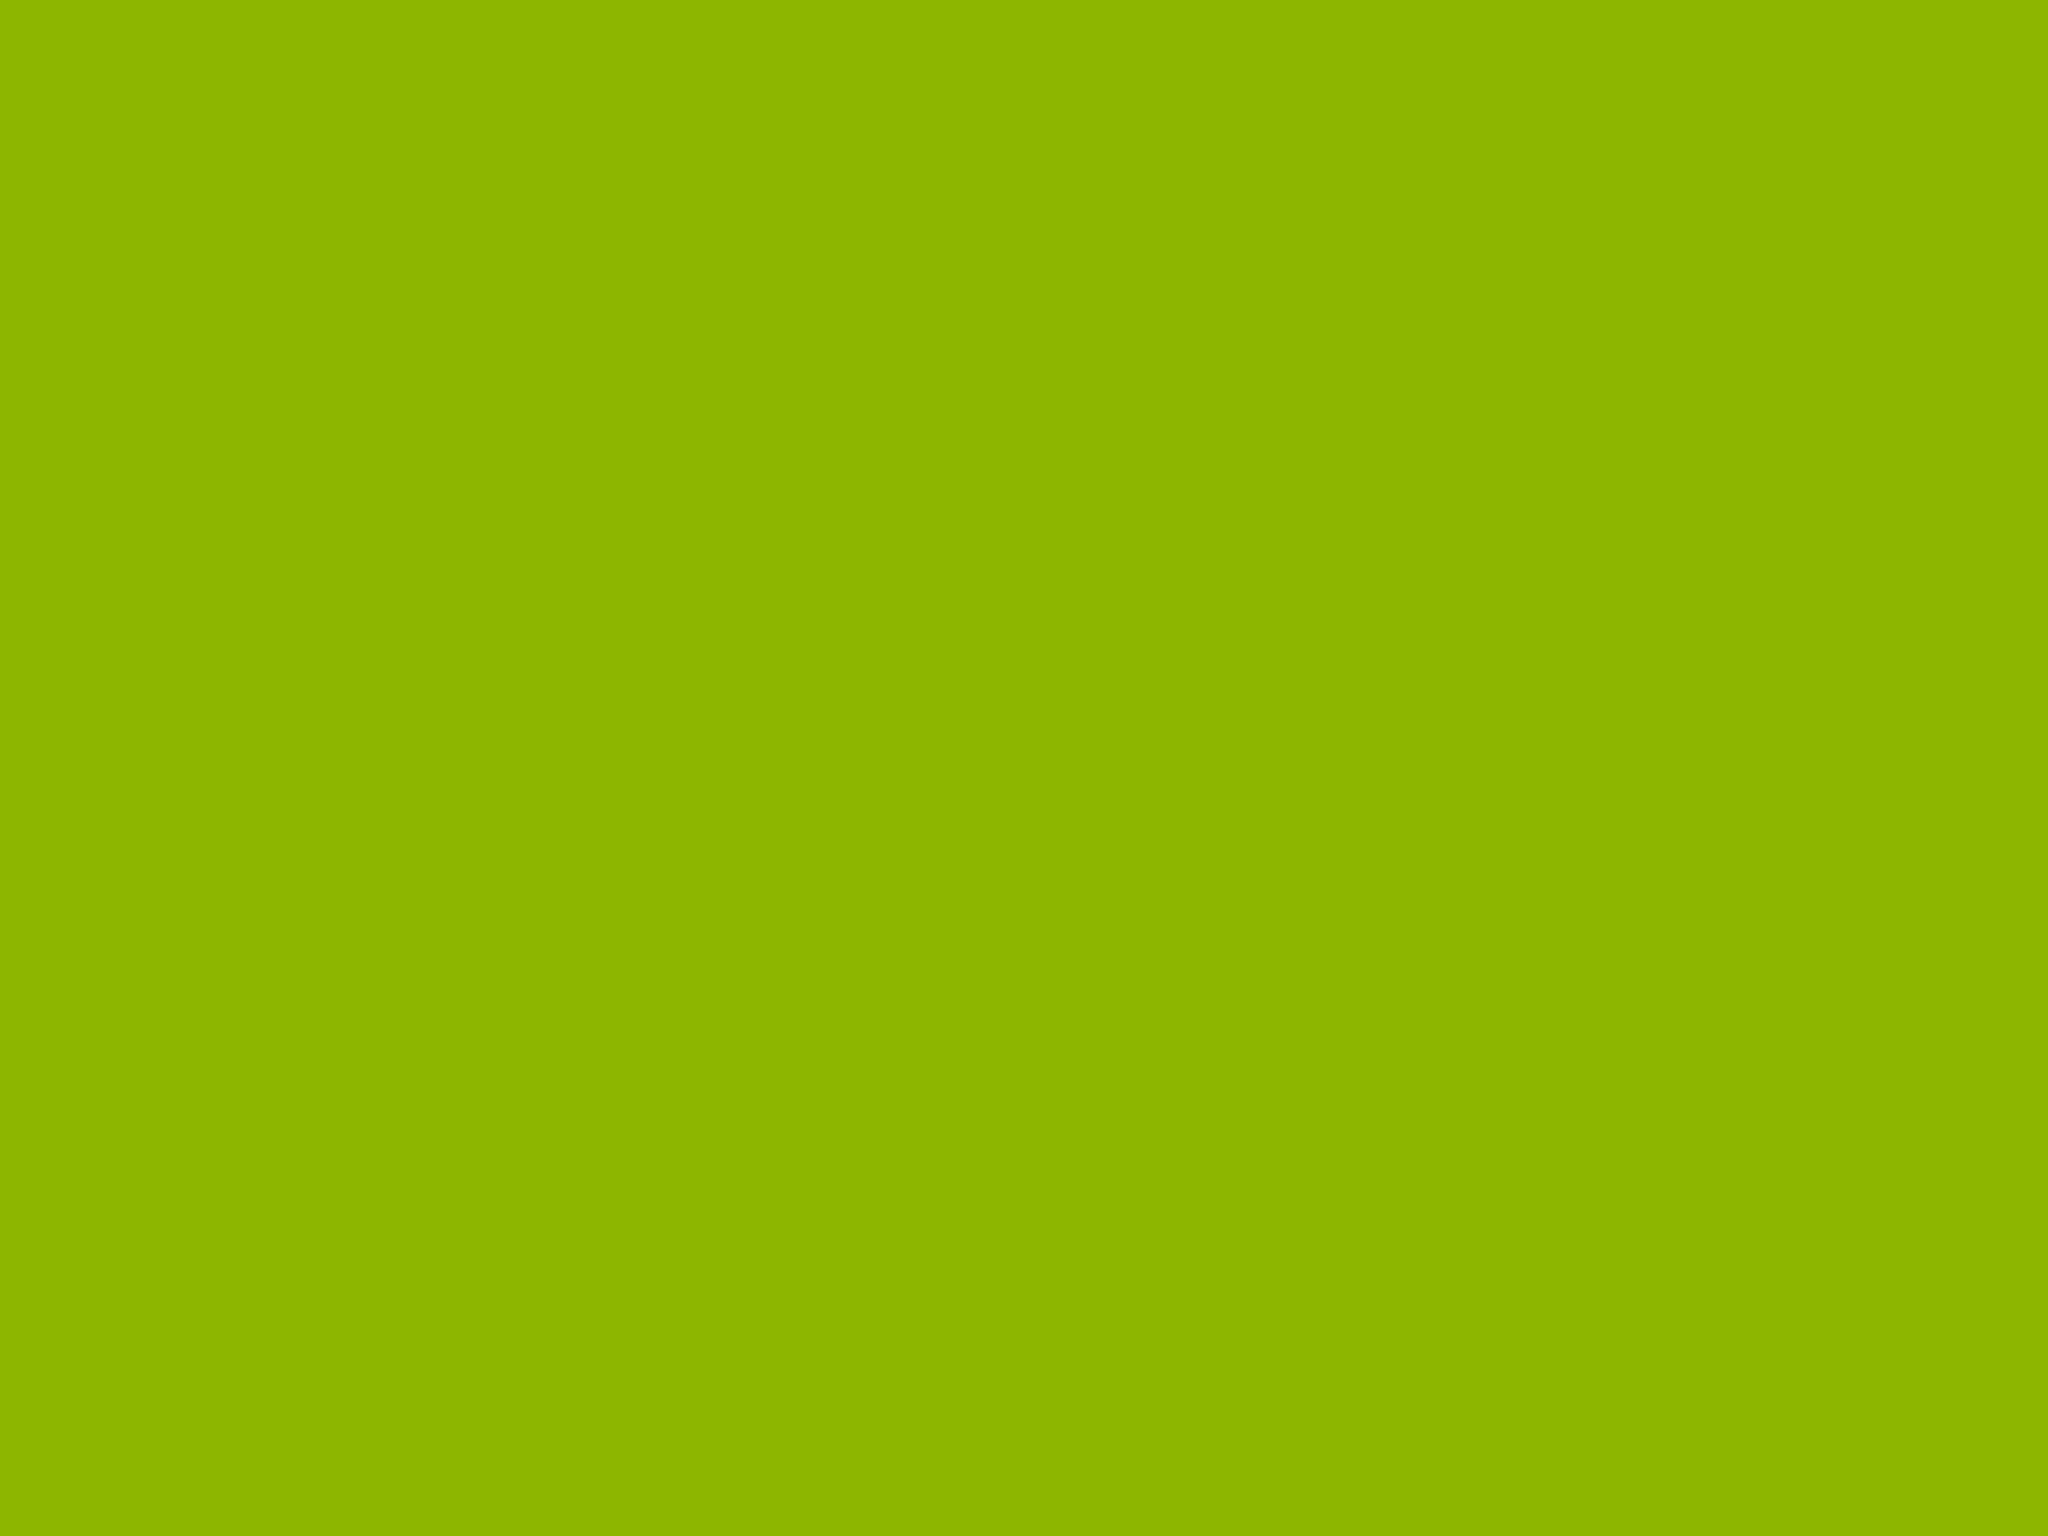 2048x1536 Apple Green Solid Color Background